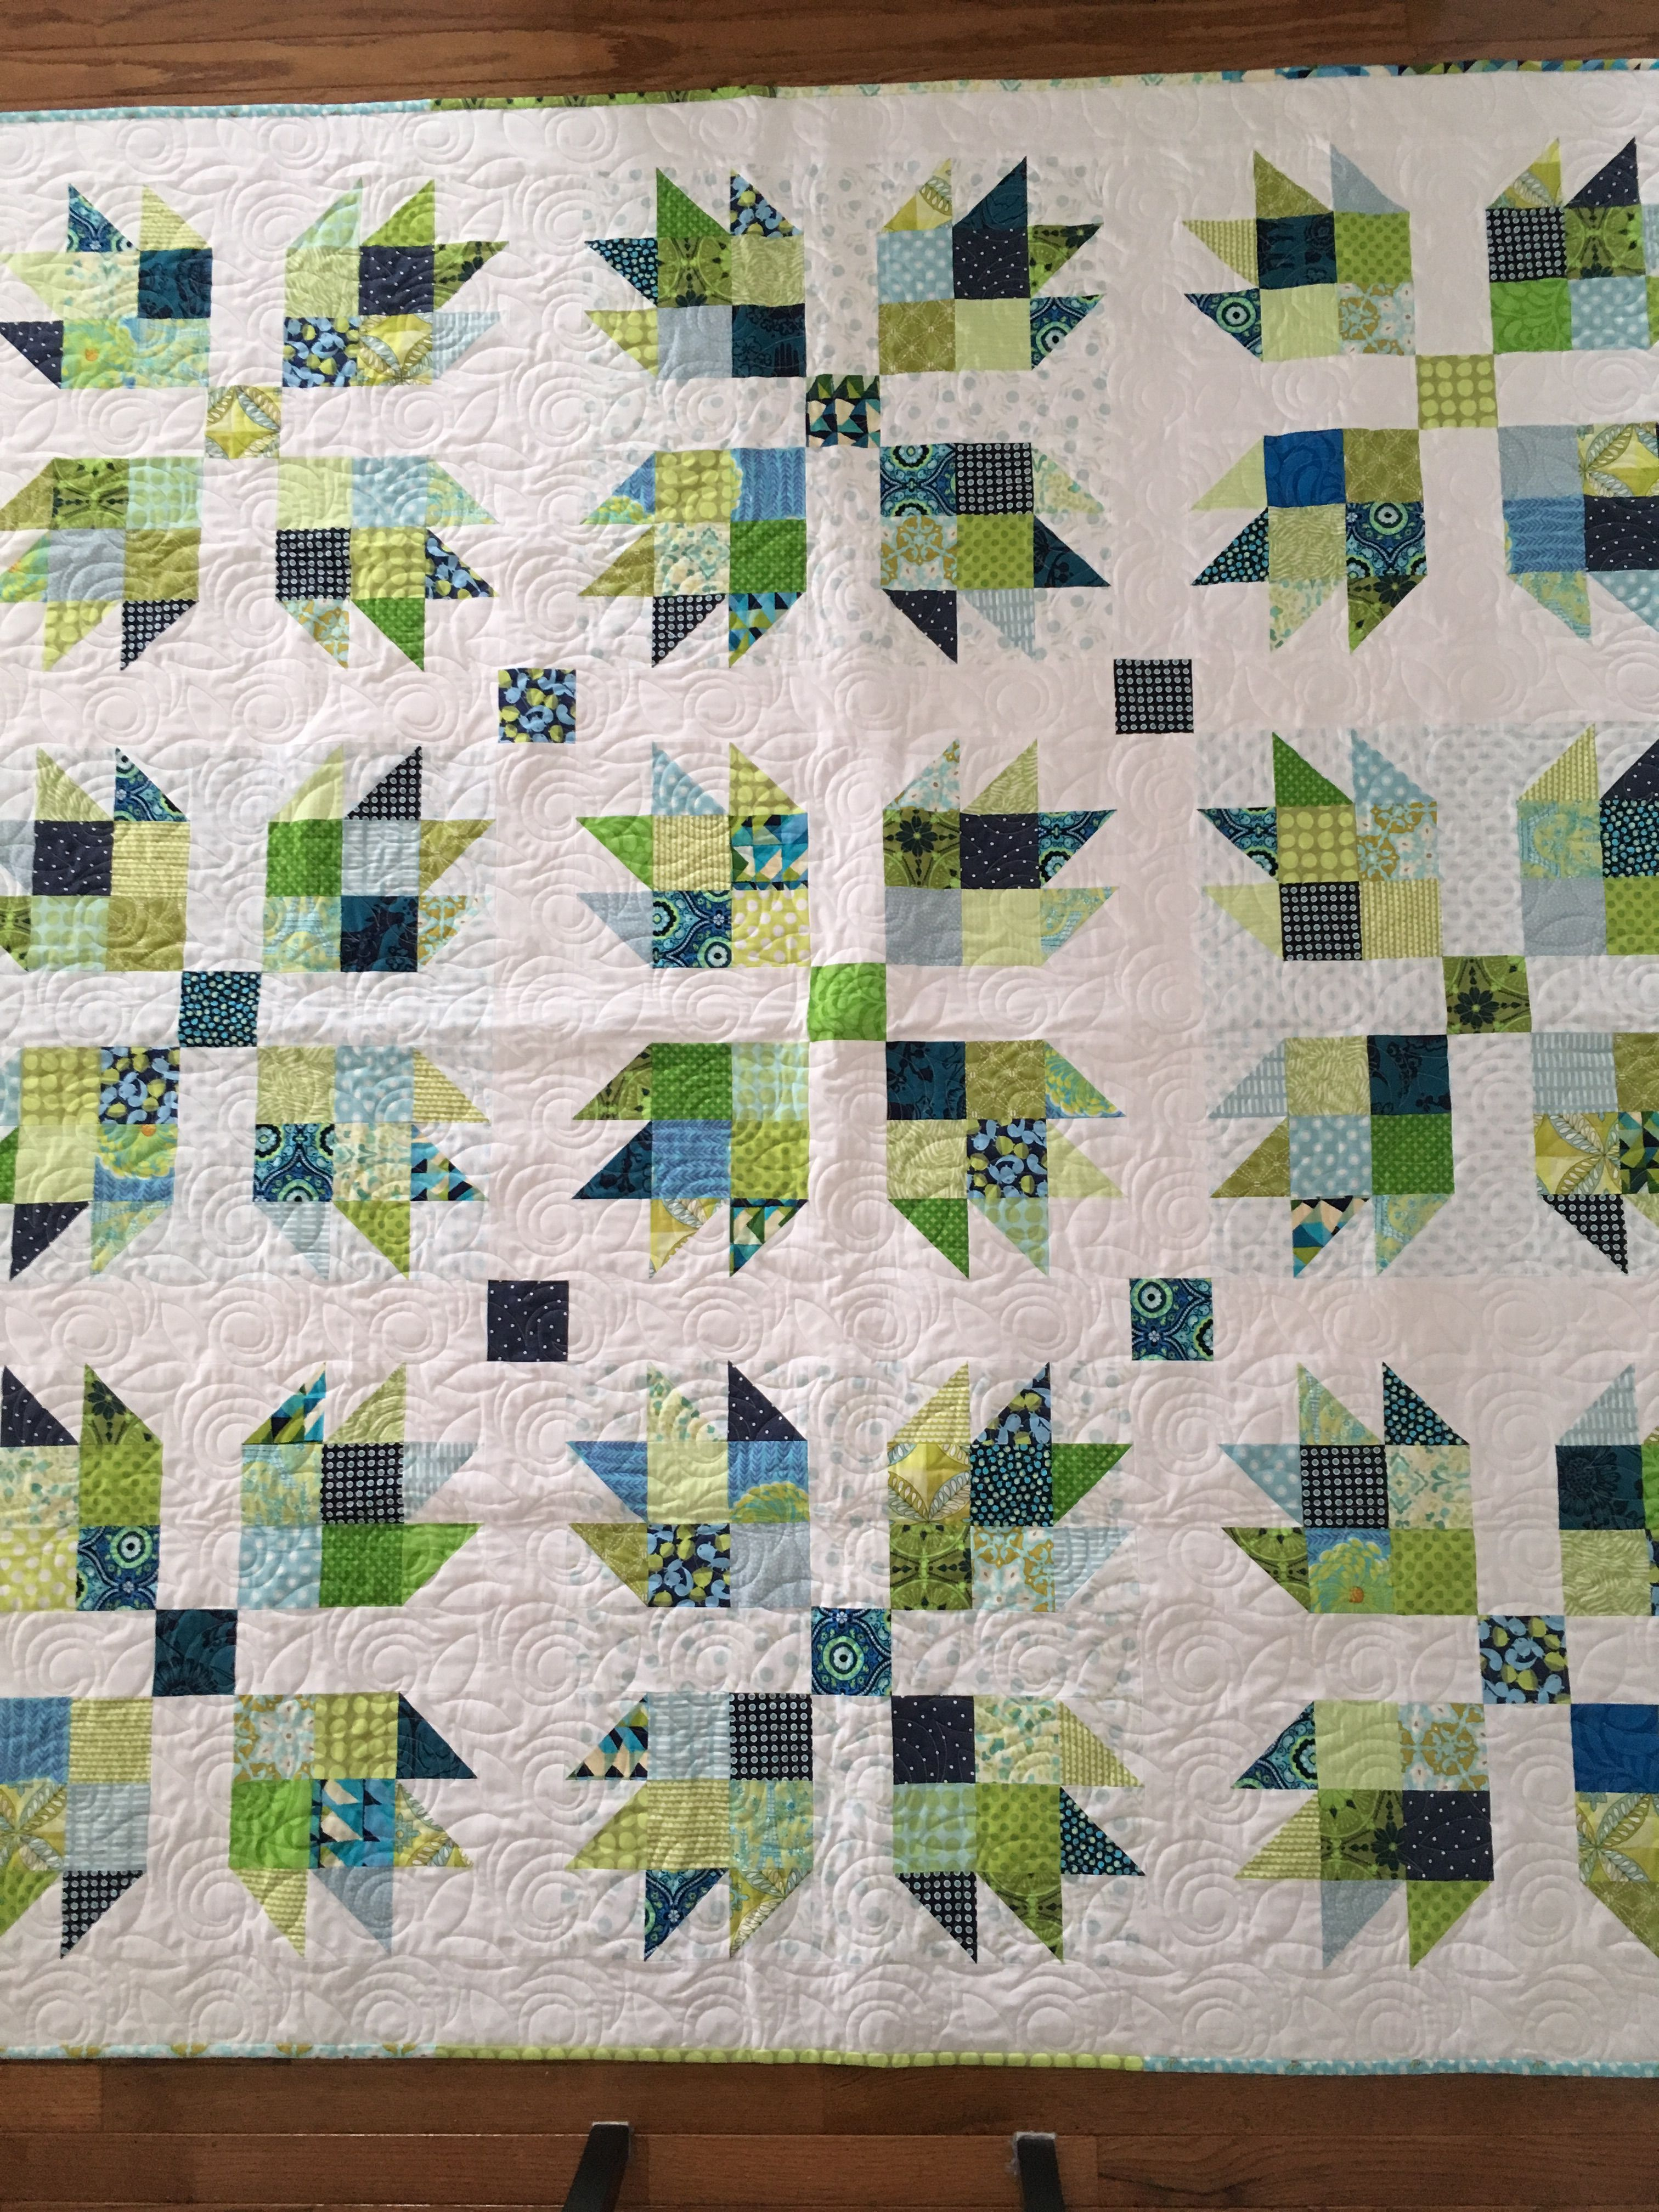 Modern Bear Paw Quilt Bear Paw Quilt Free Motion Quilt Designs Quilts